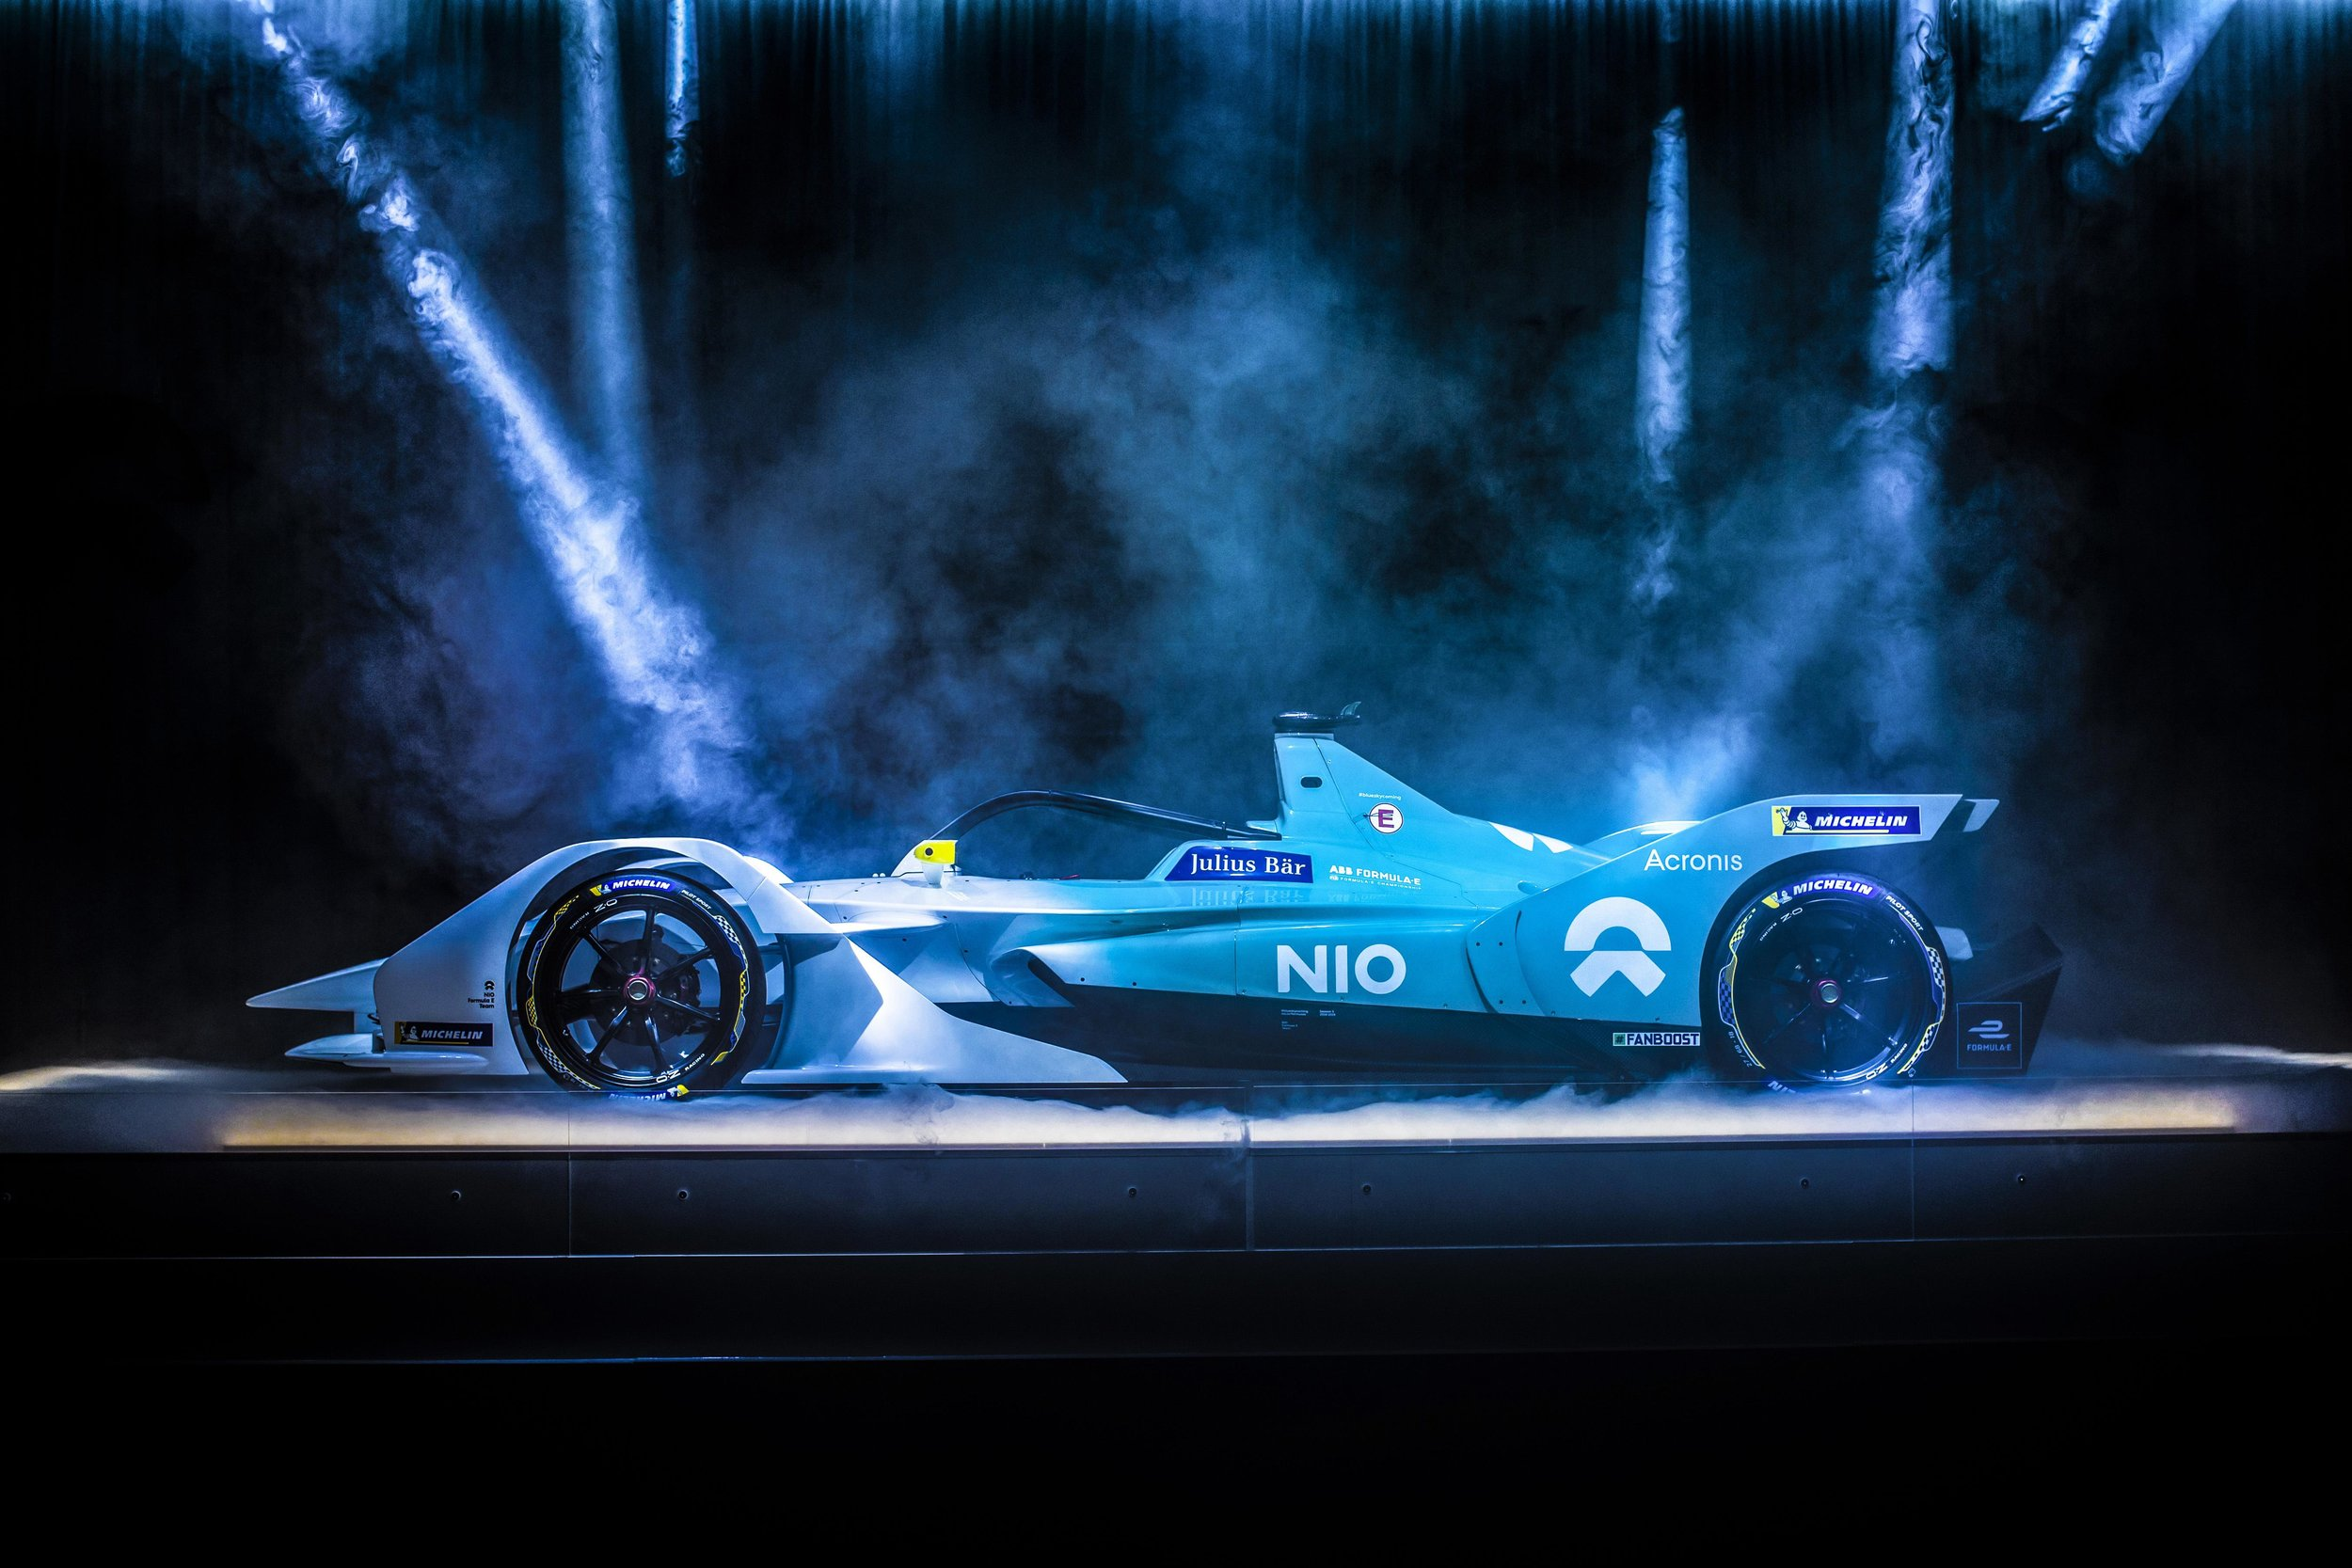 NIO's new Formula E race car represents a turning point for the EV industry -